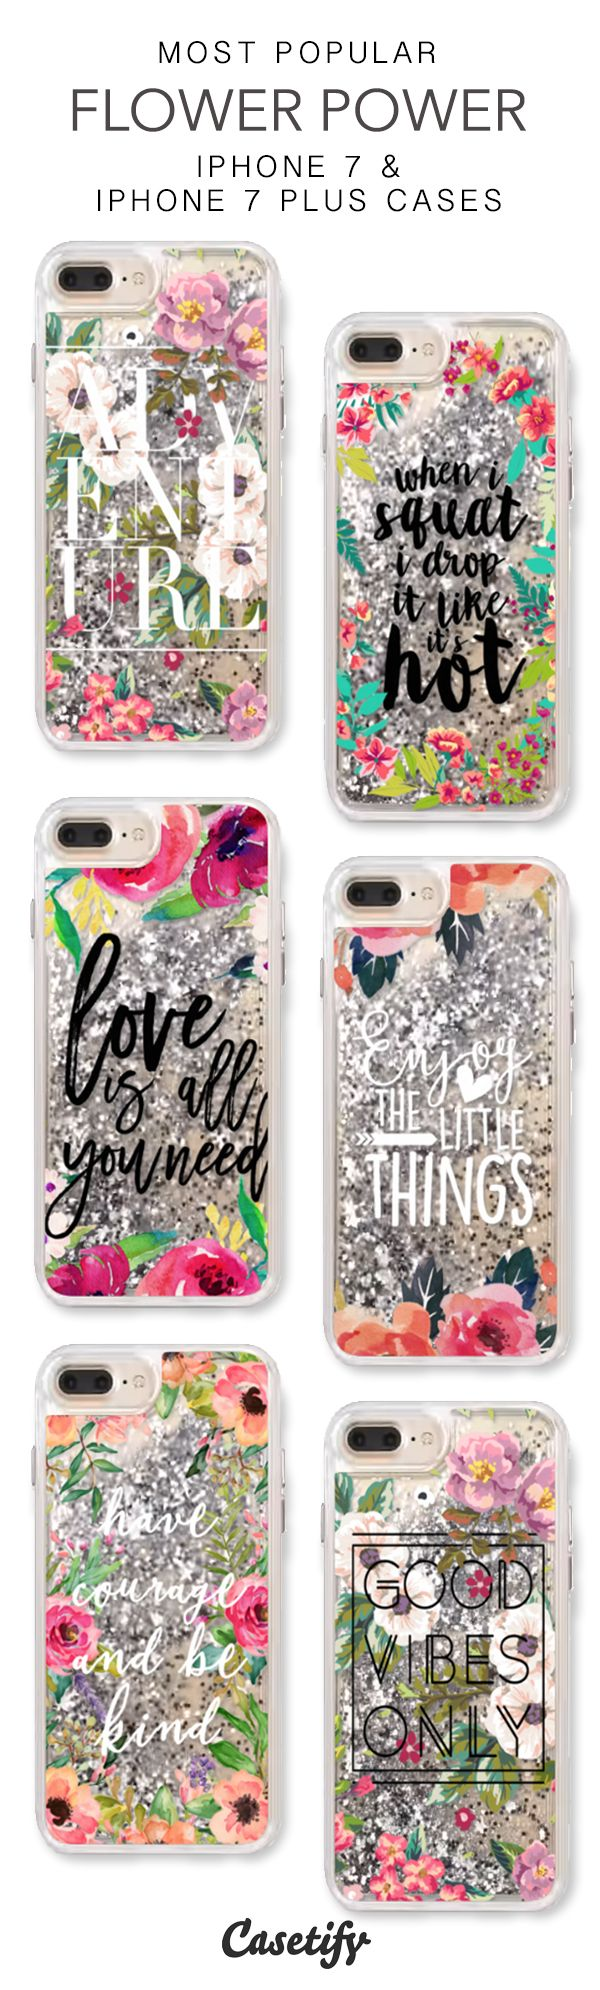 Most Popular Flower Power iPhone 7 Cases & iPhone 7 Plus Cases. More protective liquid glitter quote iPhone case here > https://www.casetify.com/en_US/collections/iphone-7-glitter-cases#/?vc=eRuU7oLTZg